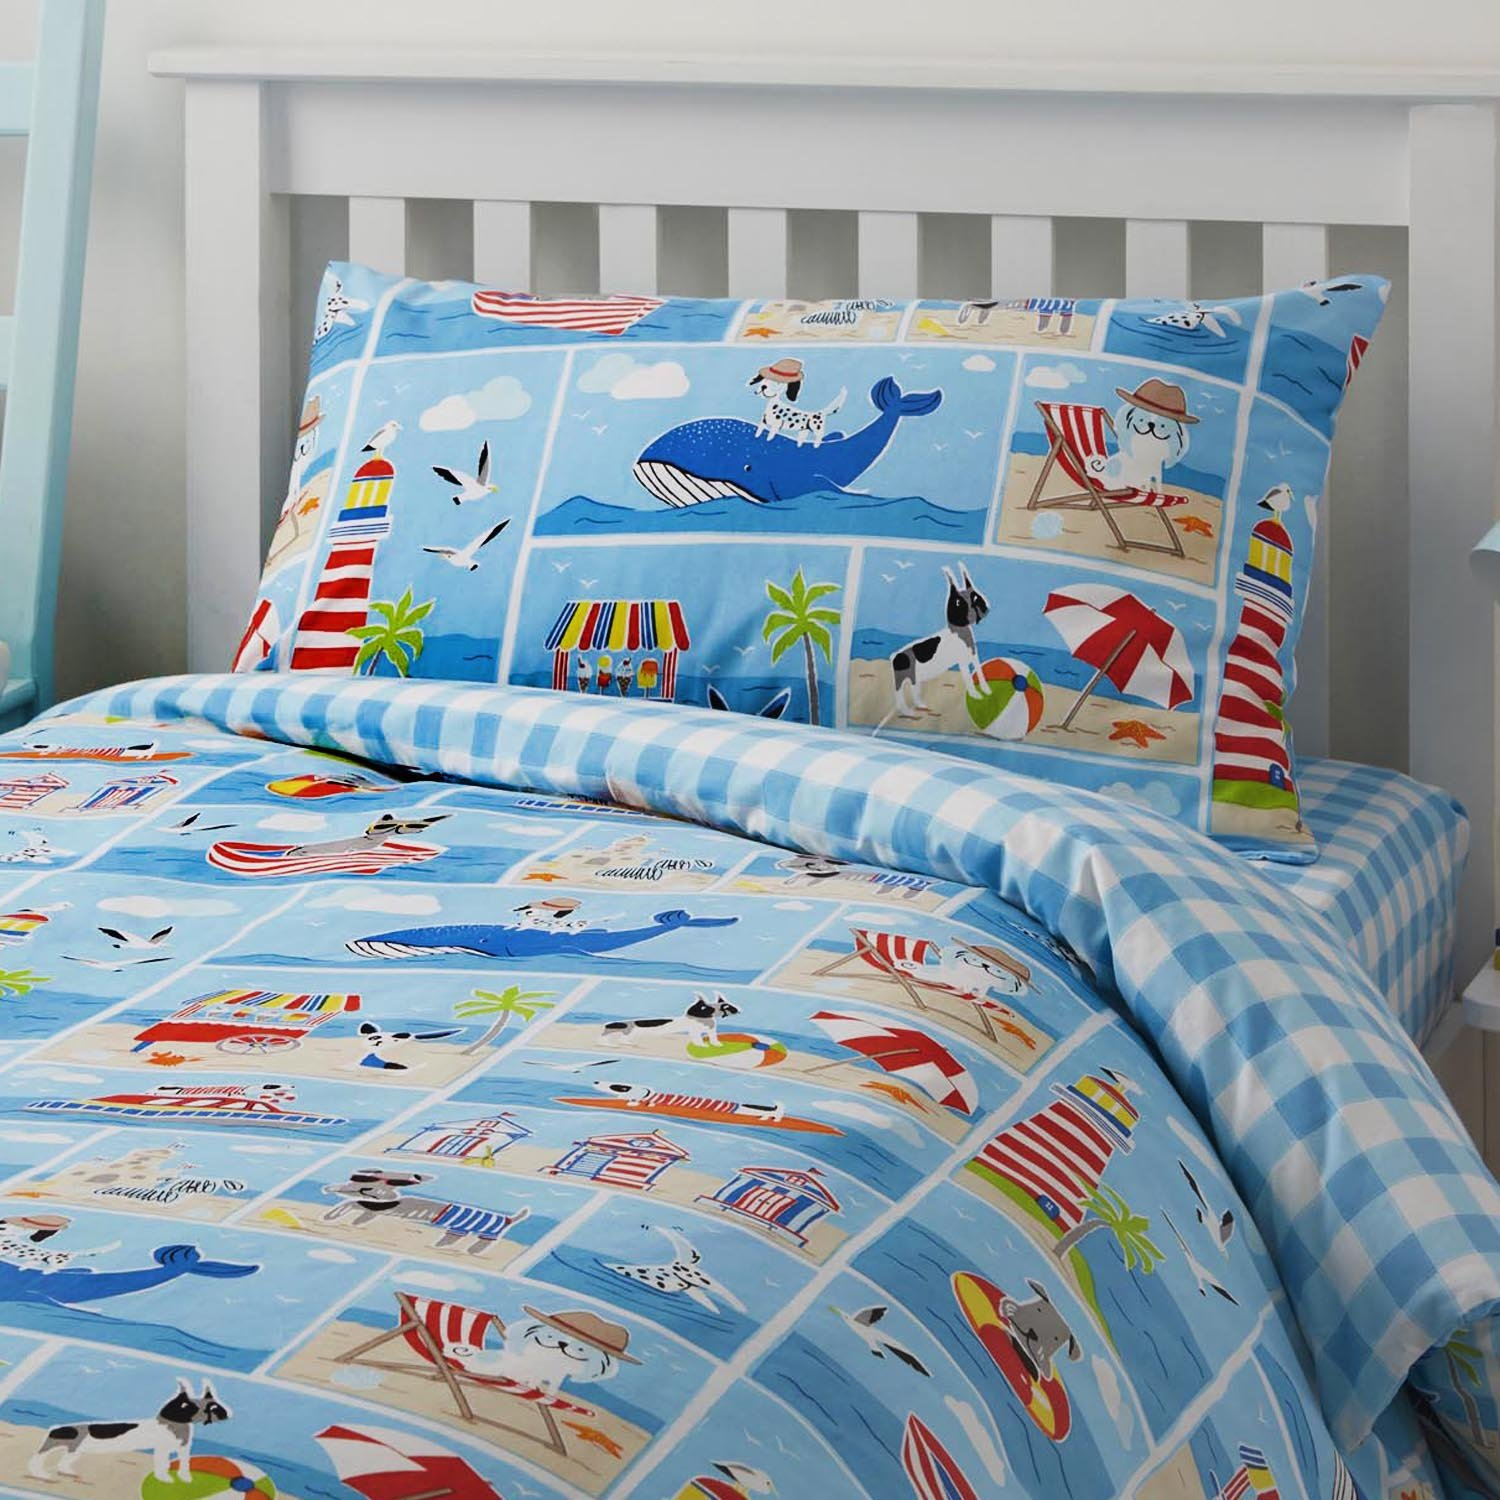 Bedlam 'Patch Seaside' Childrens Duvet Cover Set, Double J Rosenthal PHDMI21PHU